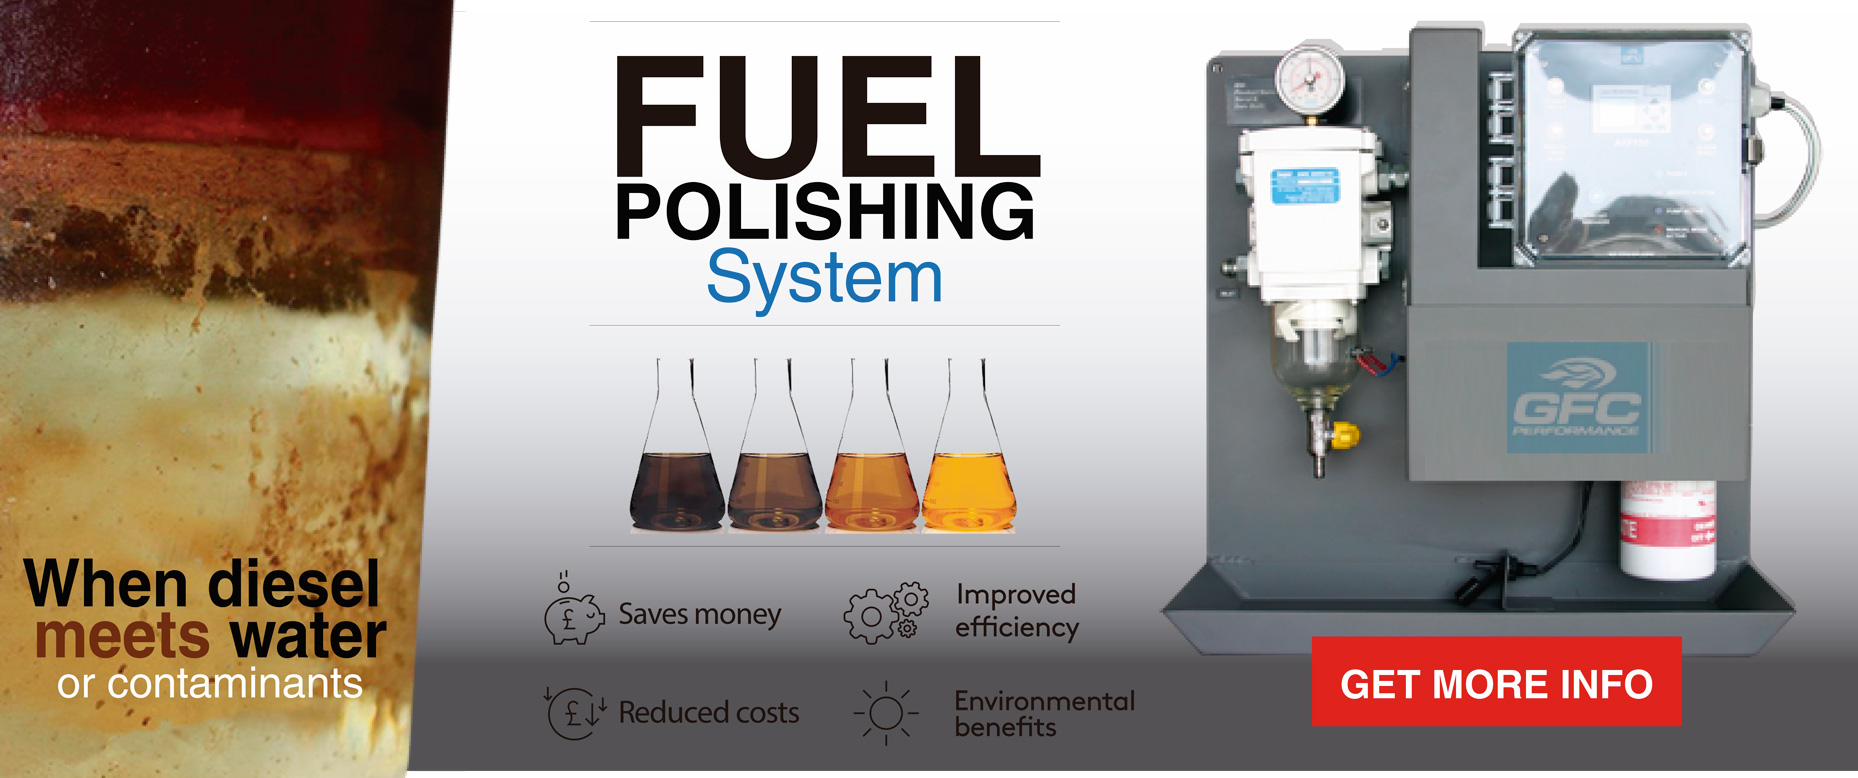 Fuel Polishing System GFC